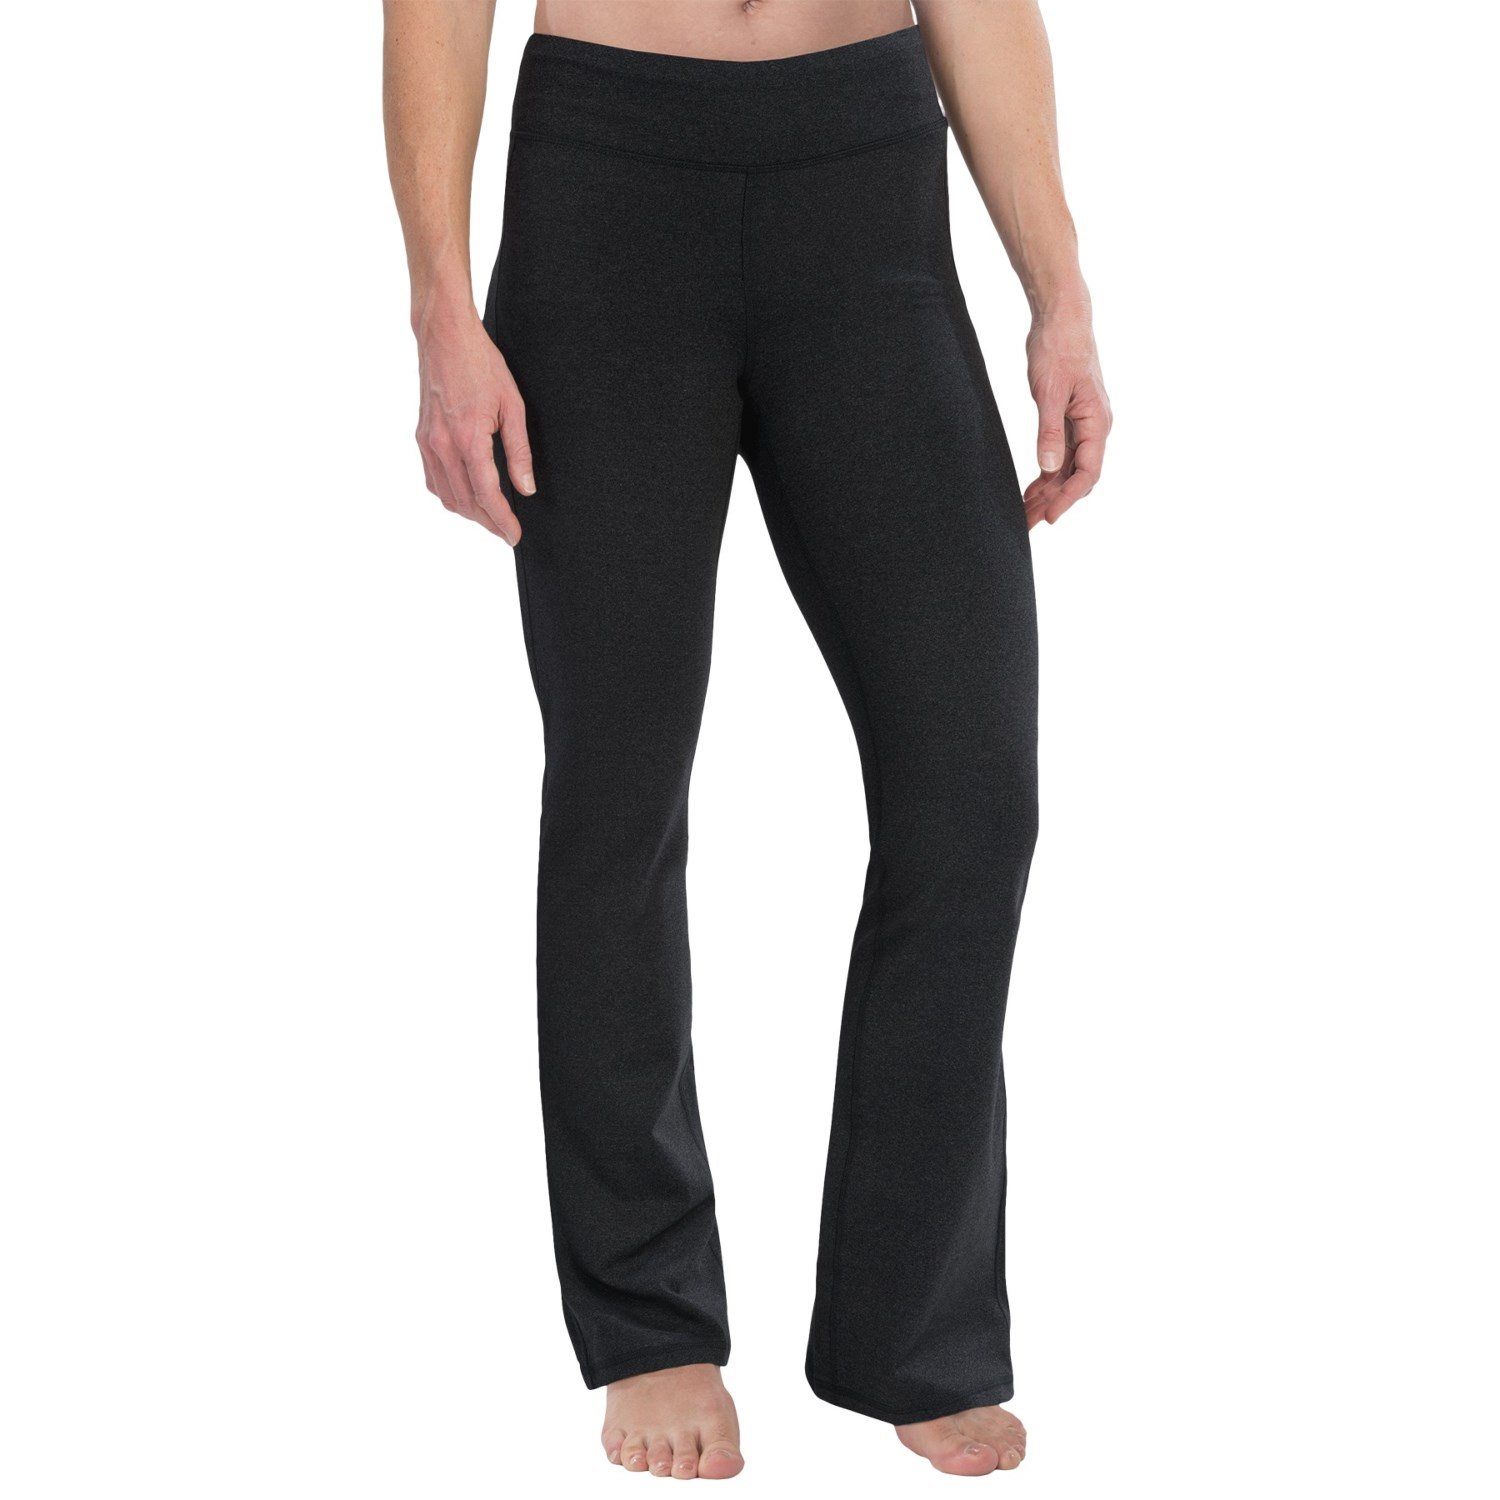 Lucy Perfect Core Yoga Pants (For Women) 8391H